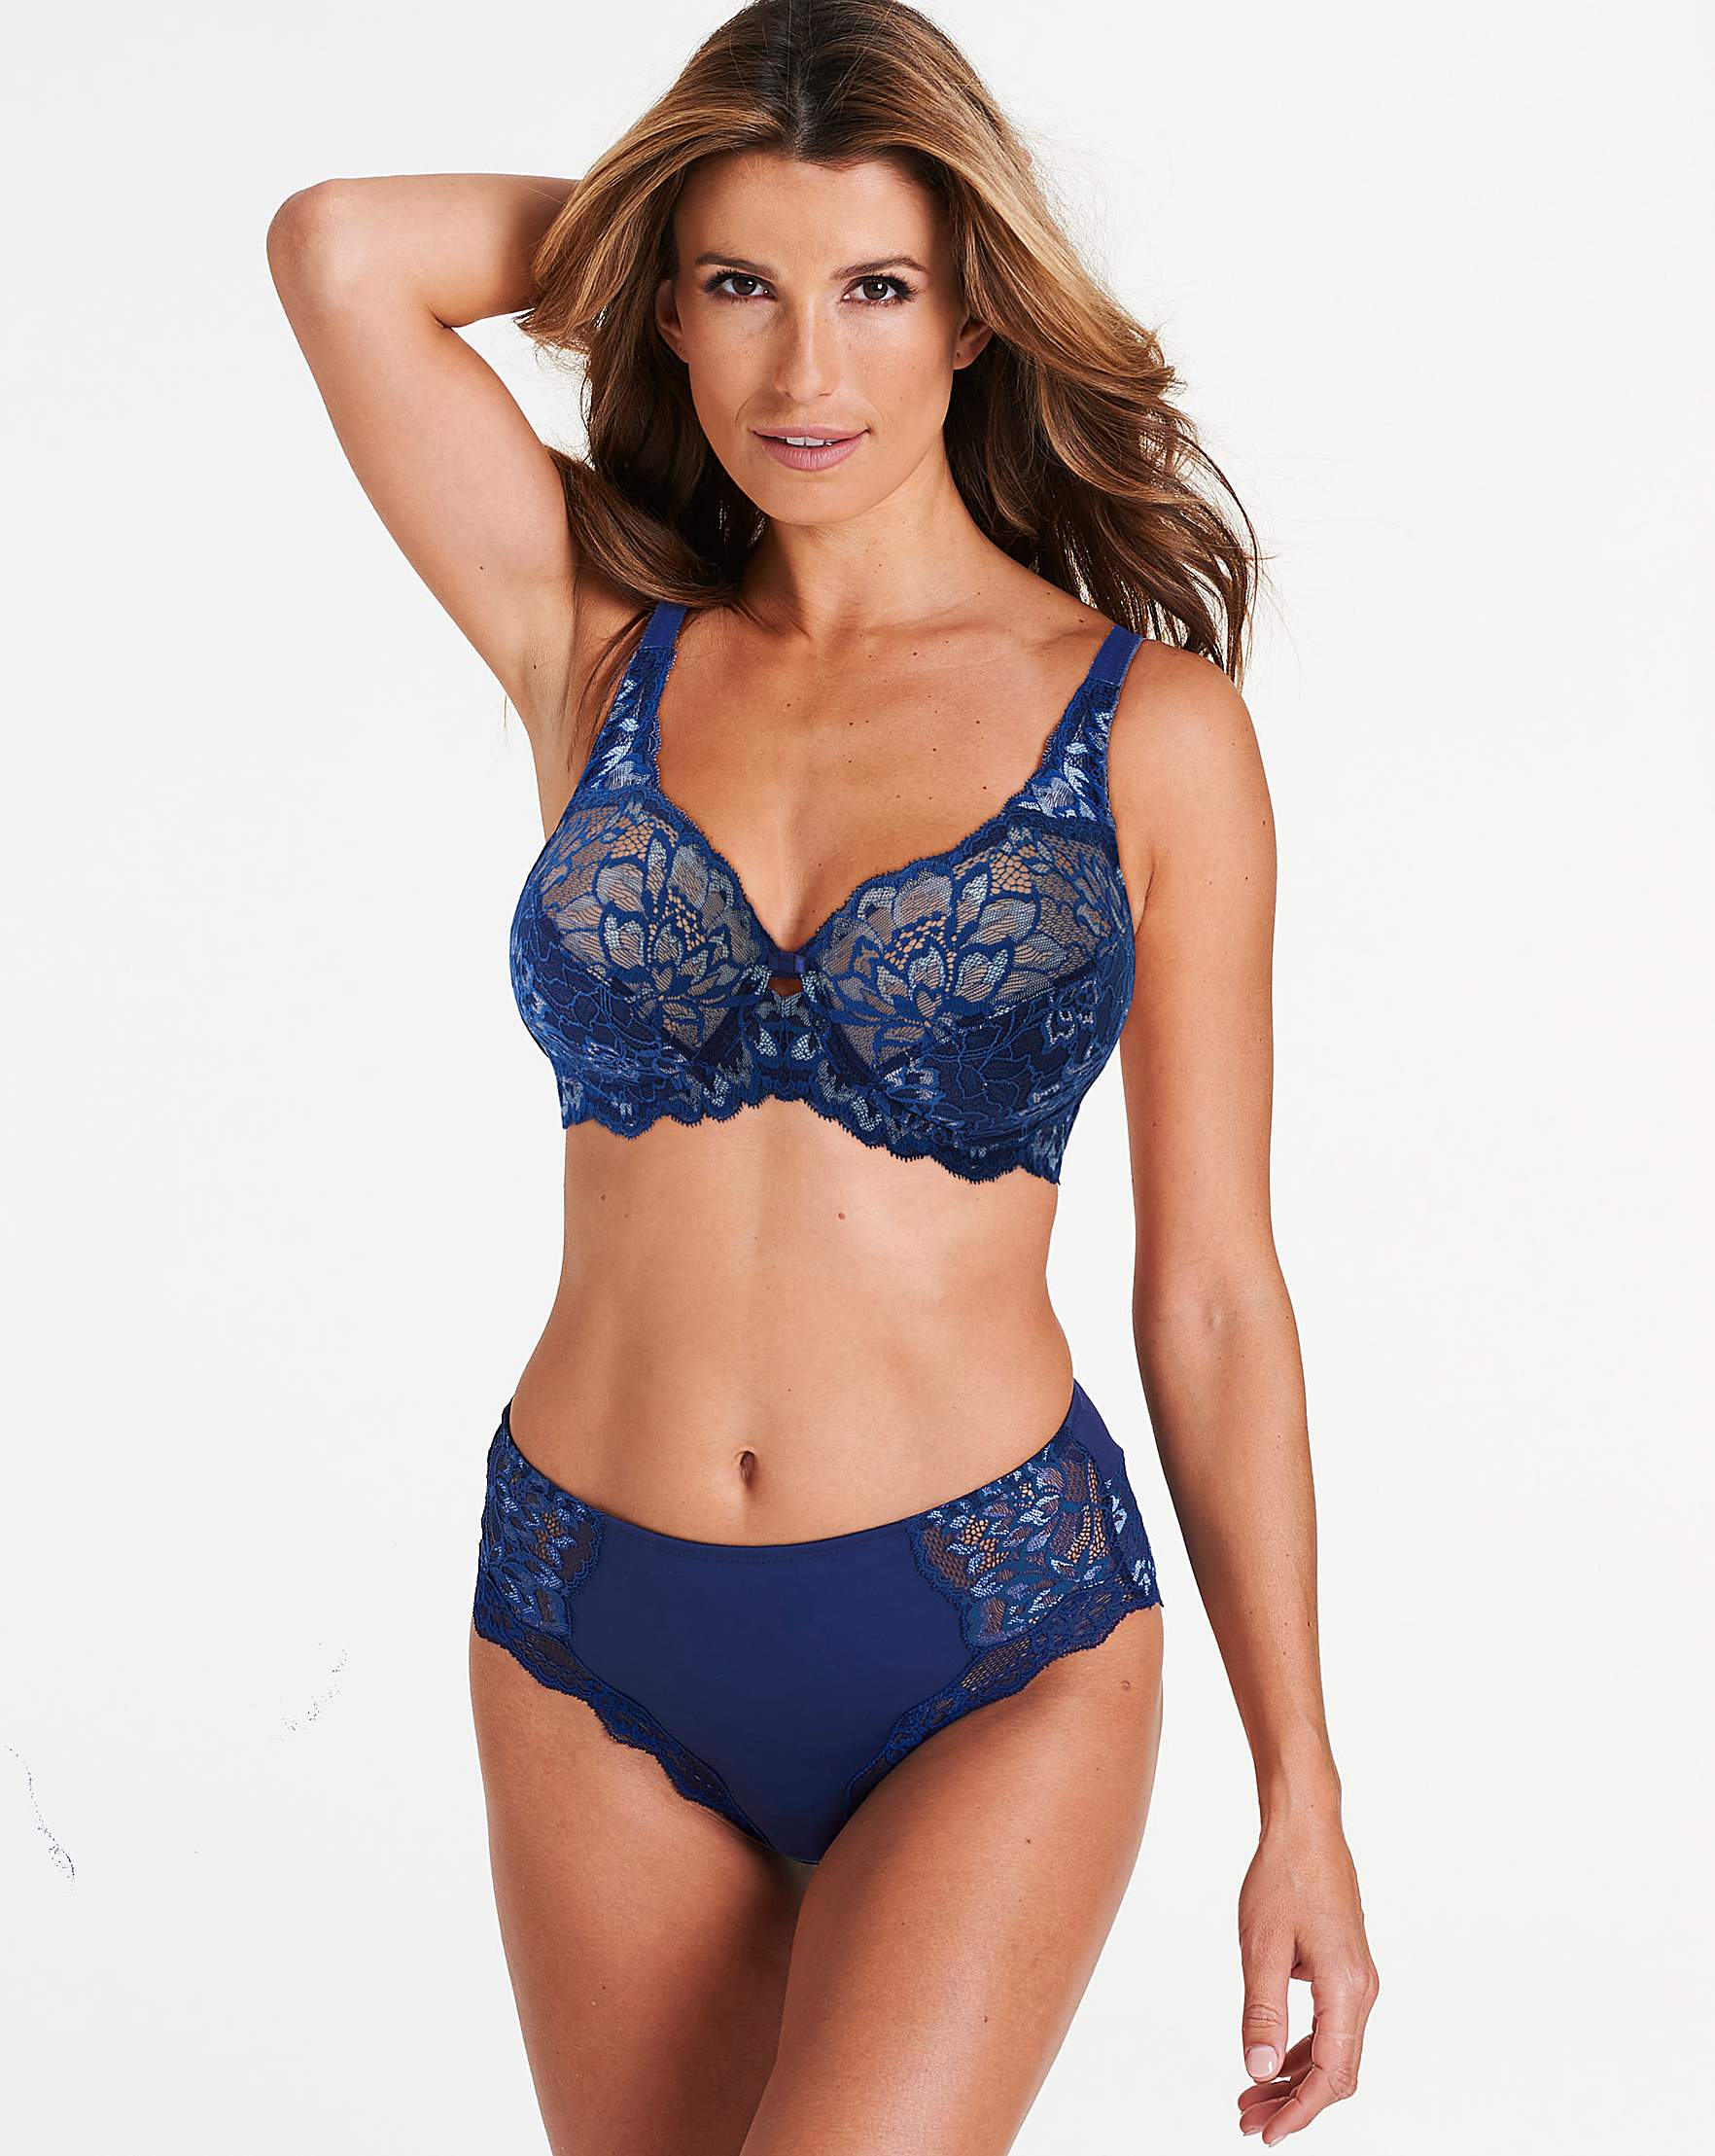 3522778be0 Triumph Amourette Charm Full Cup Wired Dark Blue Bra